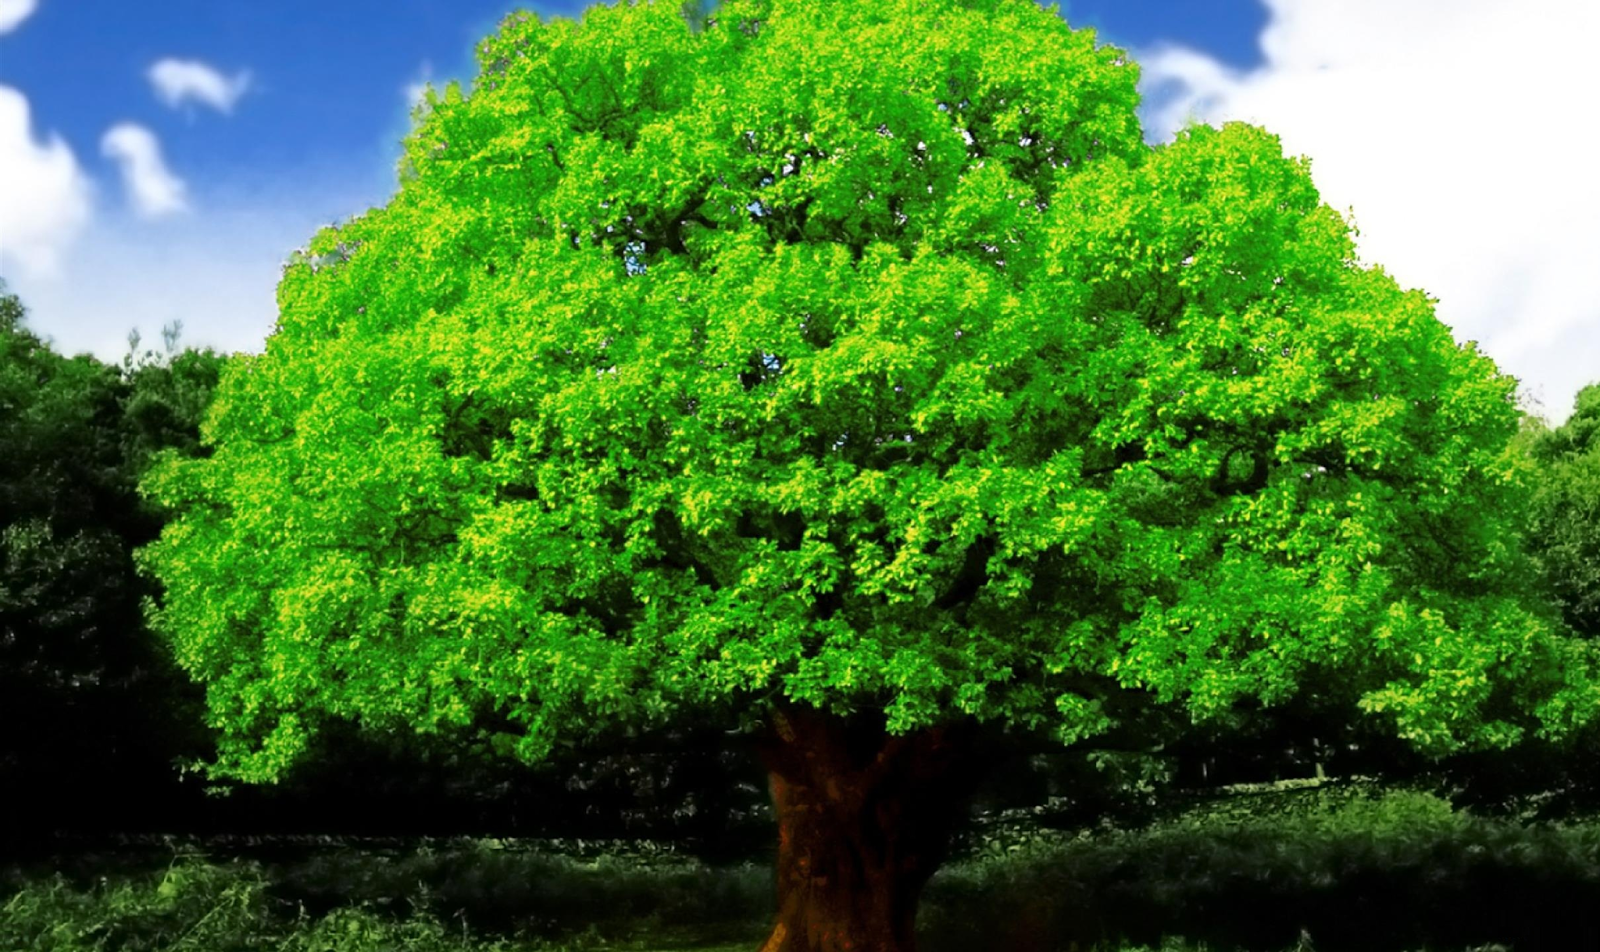 Best hd every wallpapers beautiful big green tree hd for Tree wallpaper